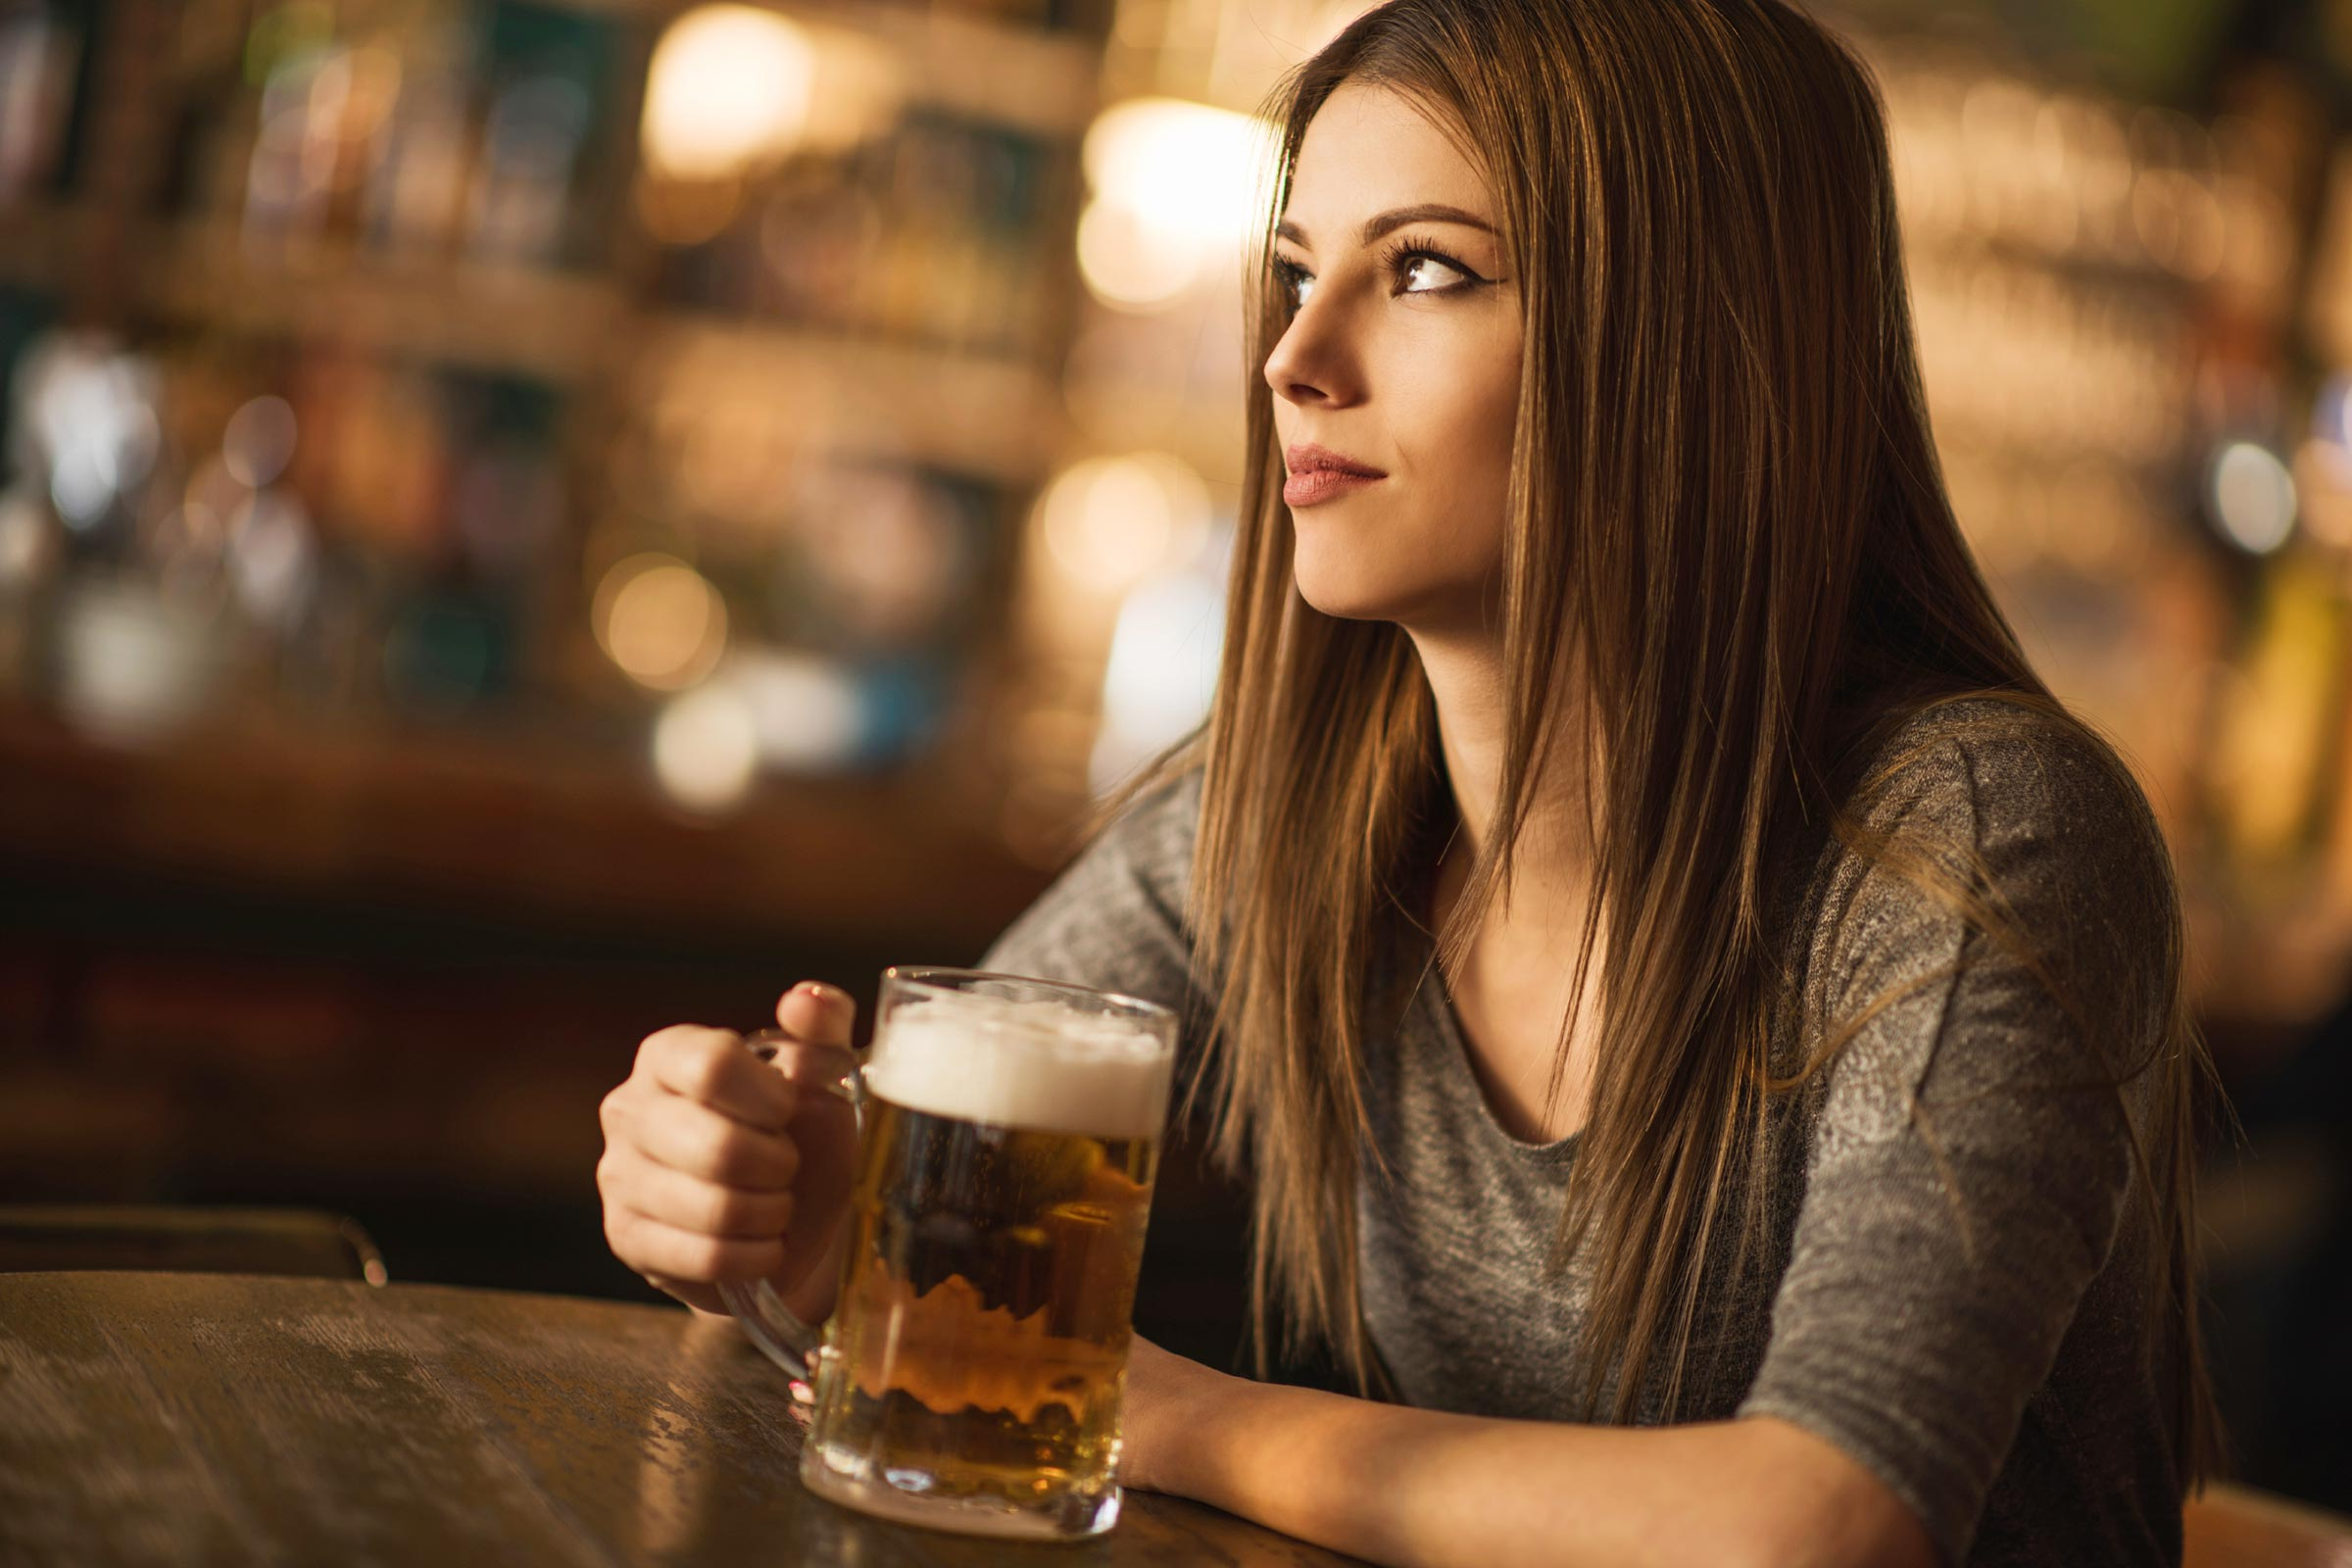 Do Women React Differently to Alcohol?